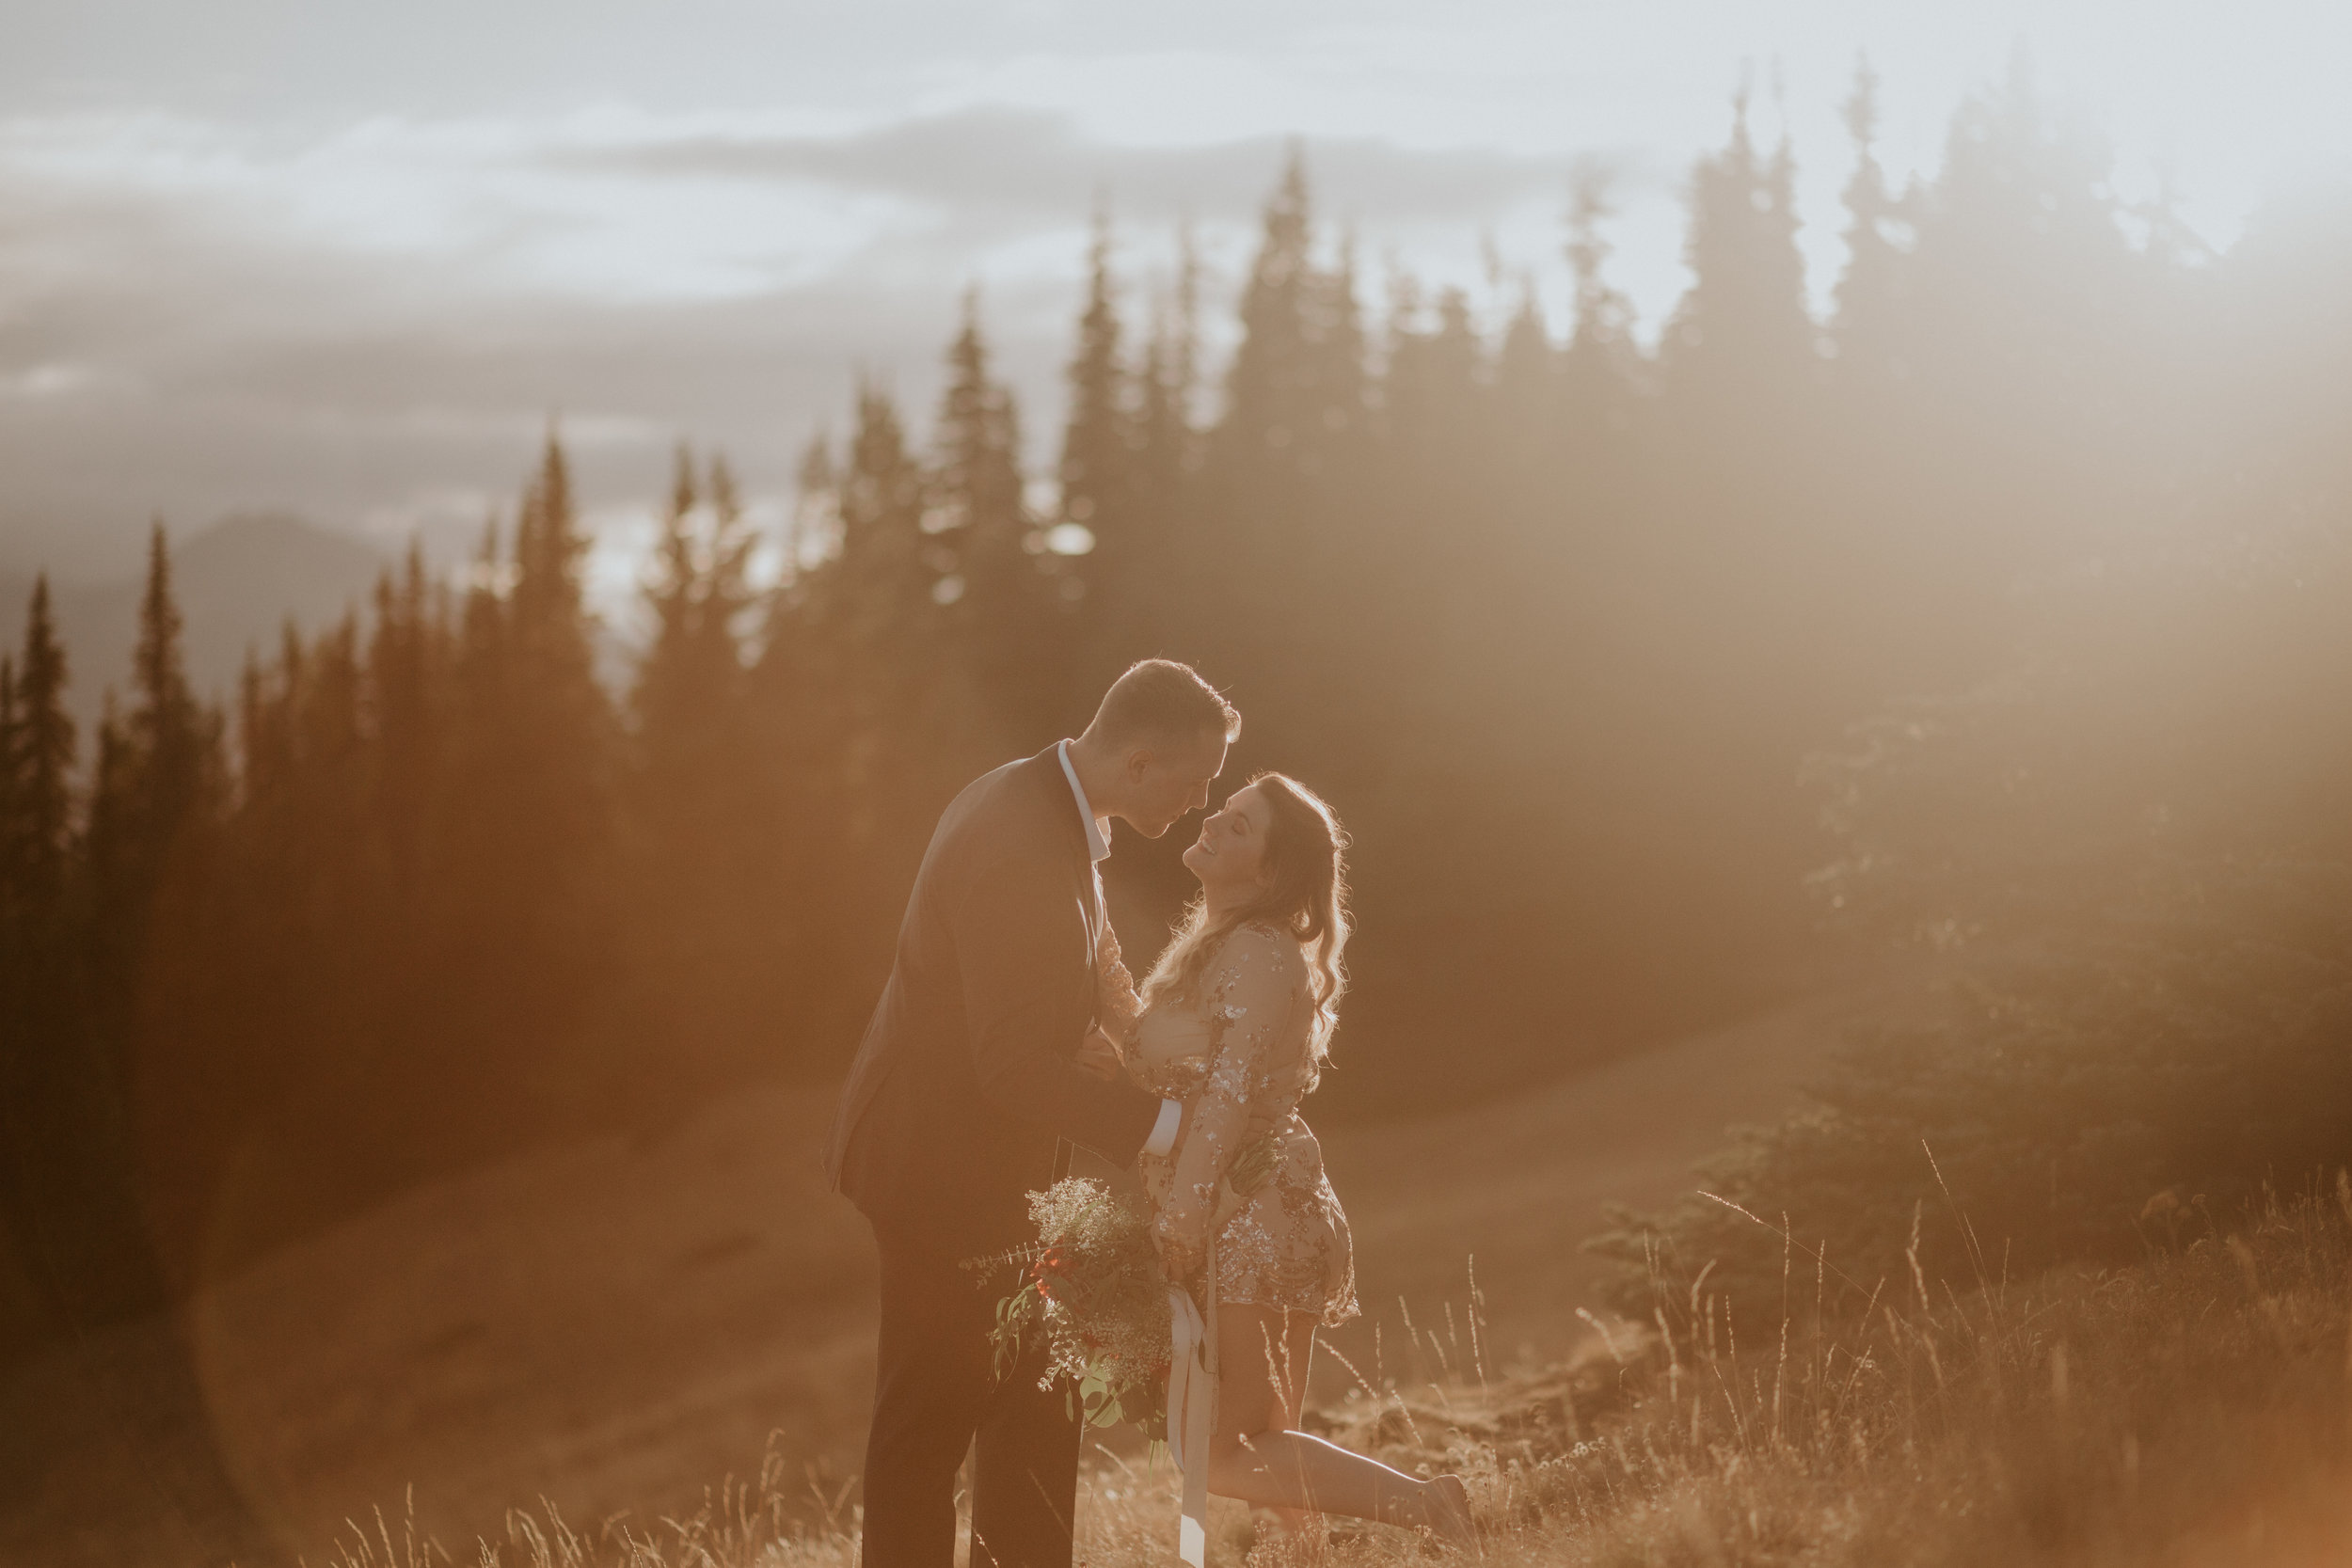 PNW-Hurricane-Ridge-Port-Angeles-Washington-elopement-photographer-kayla-dawn-photography-kayladawnphoto-wedding-anniversary-photoshoot-olympic-peninsula-327.jpg